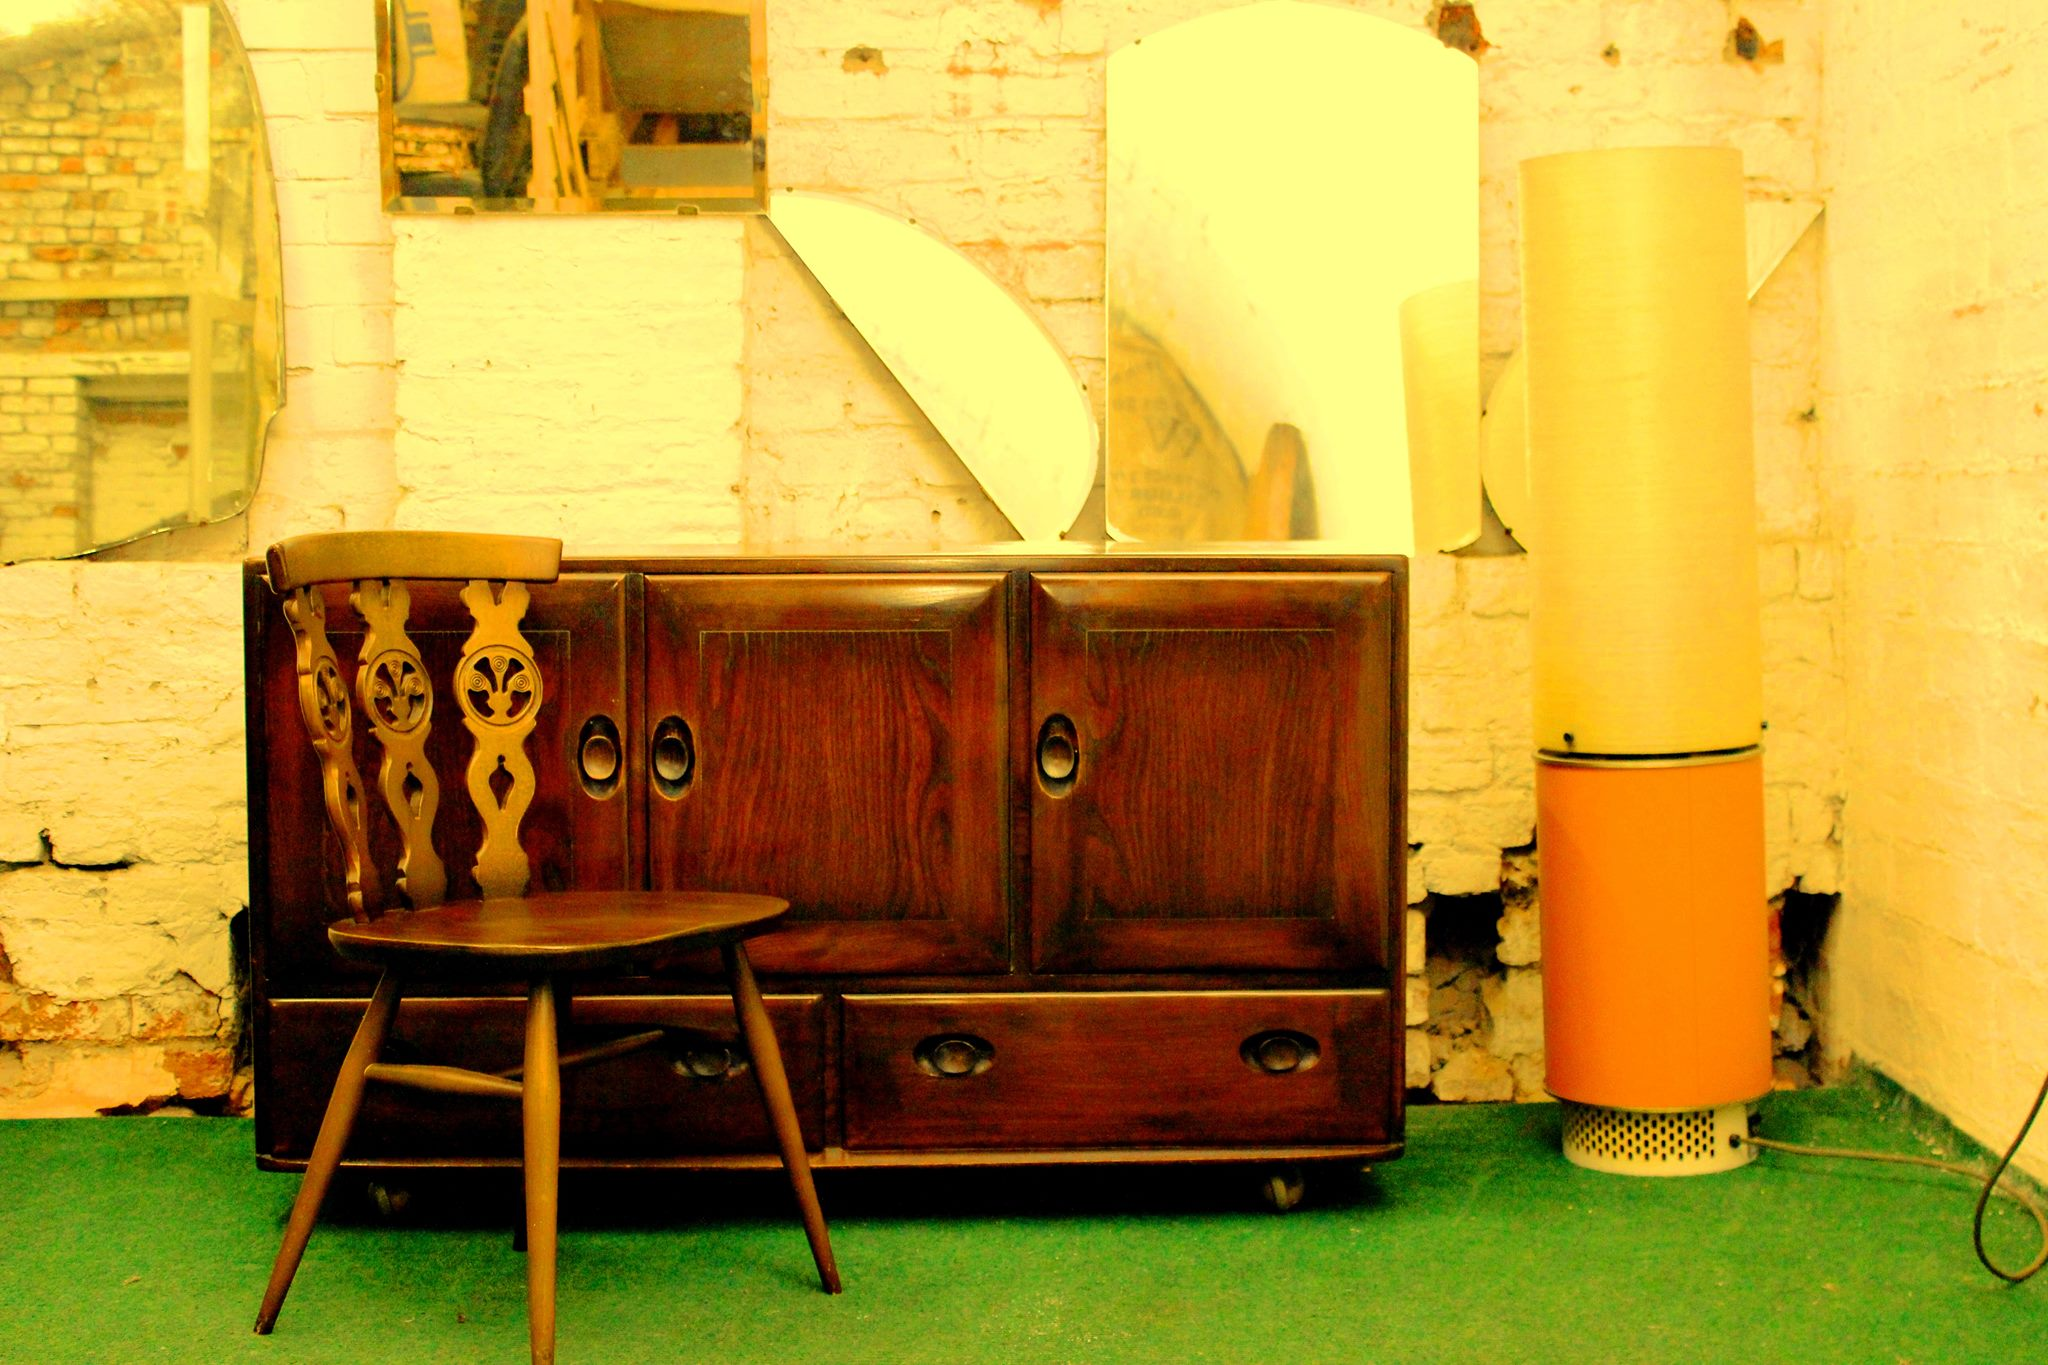 Newcastle used furniture recycle your furniture vintage and antiques pieces. Shop Online, UK delivery